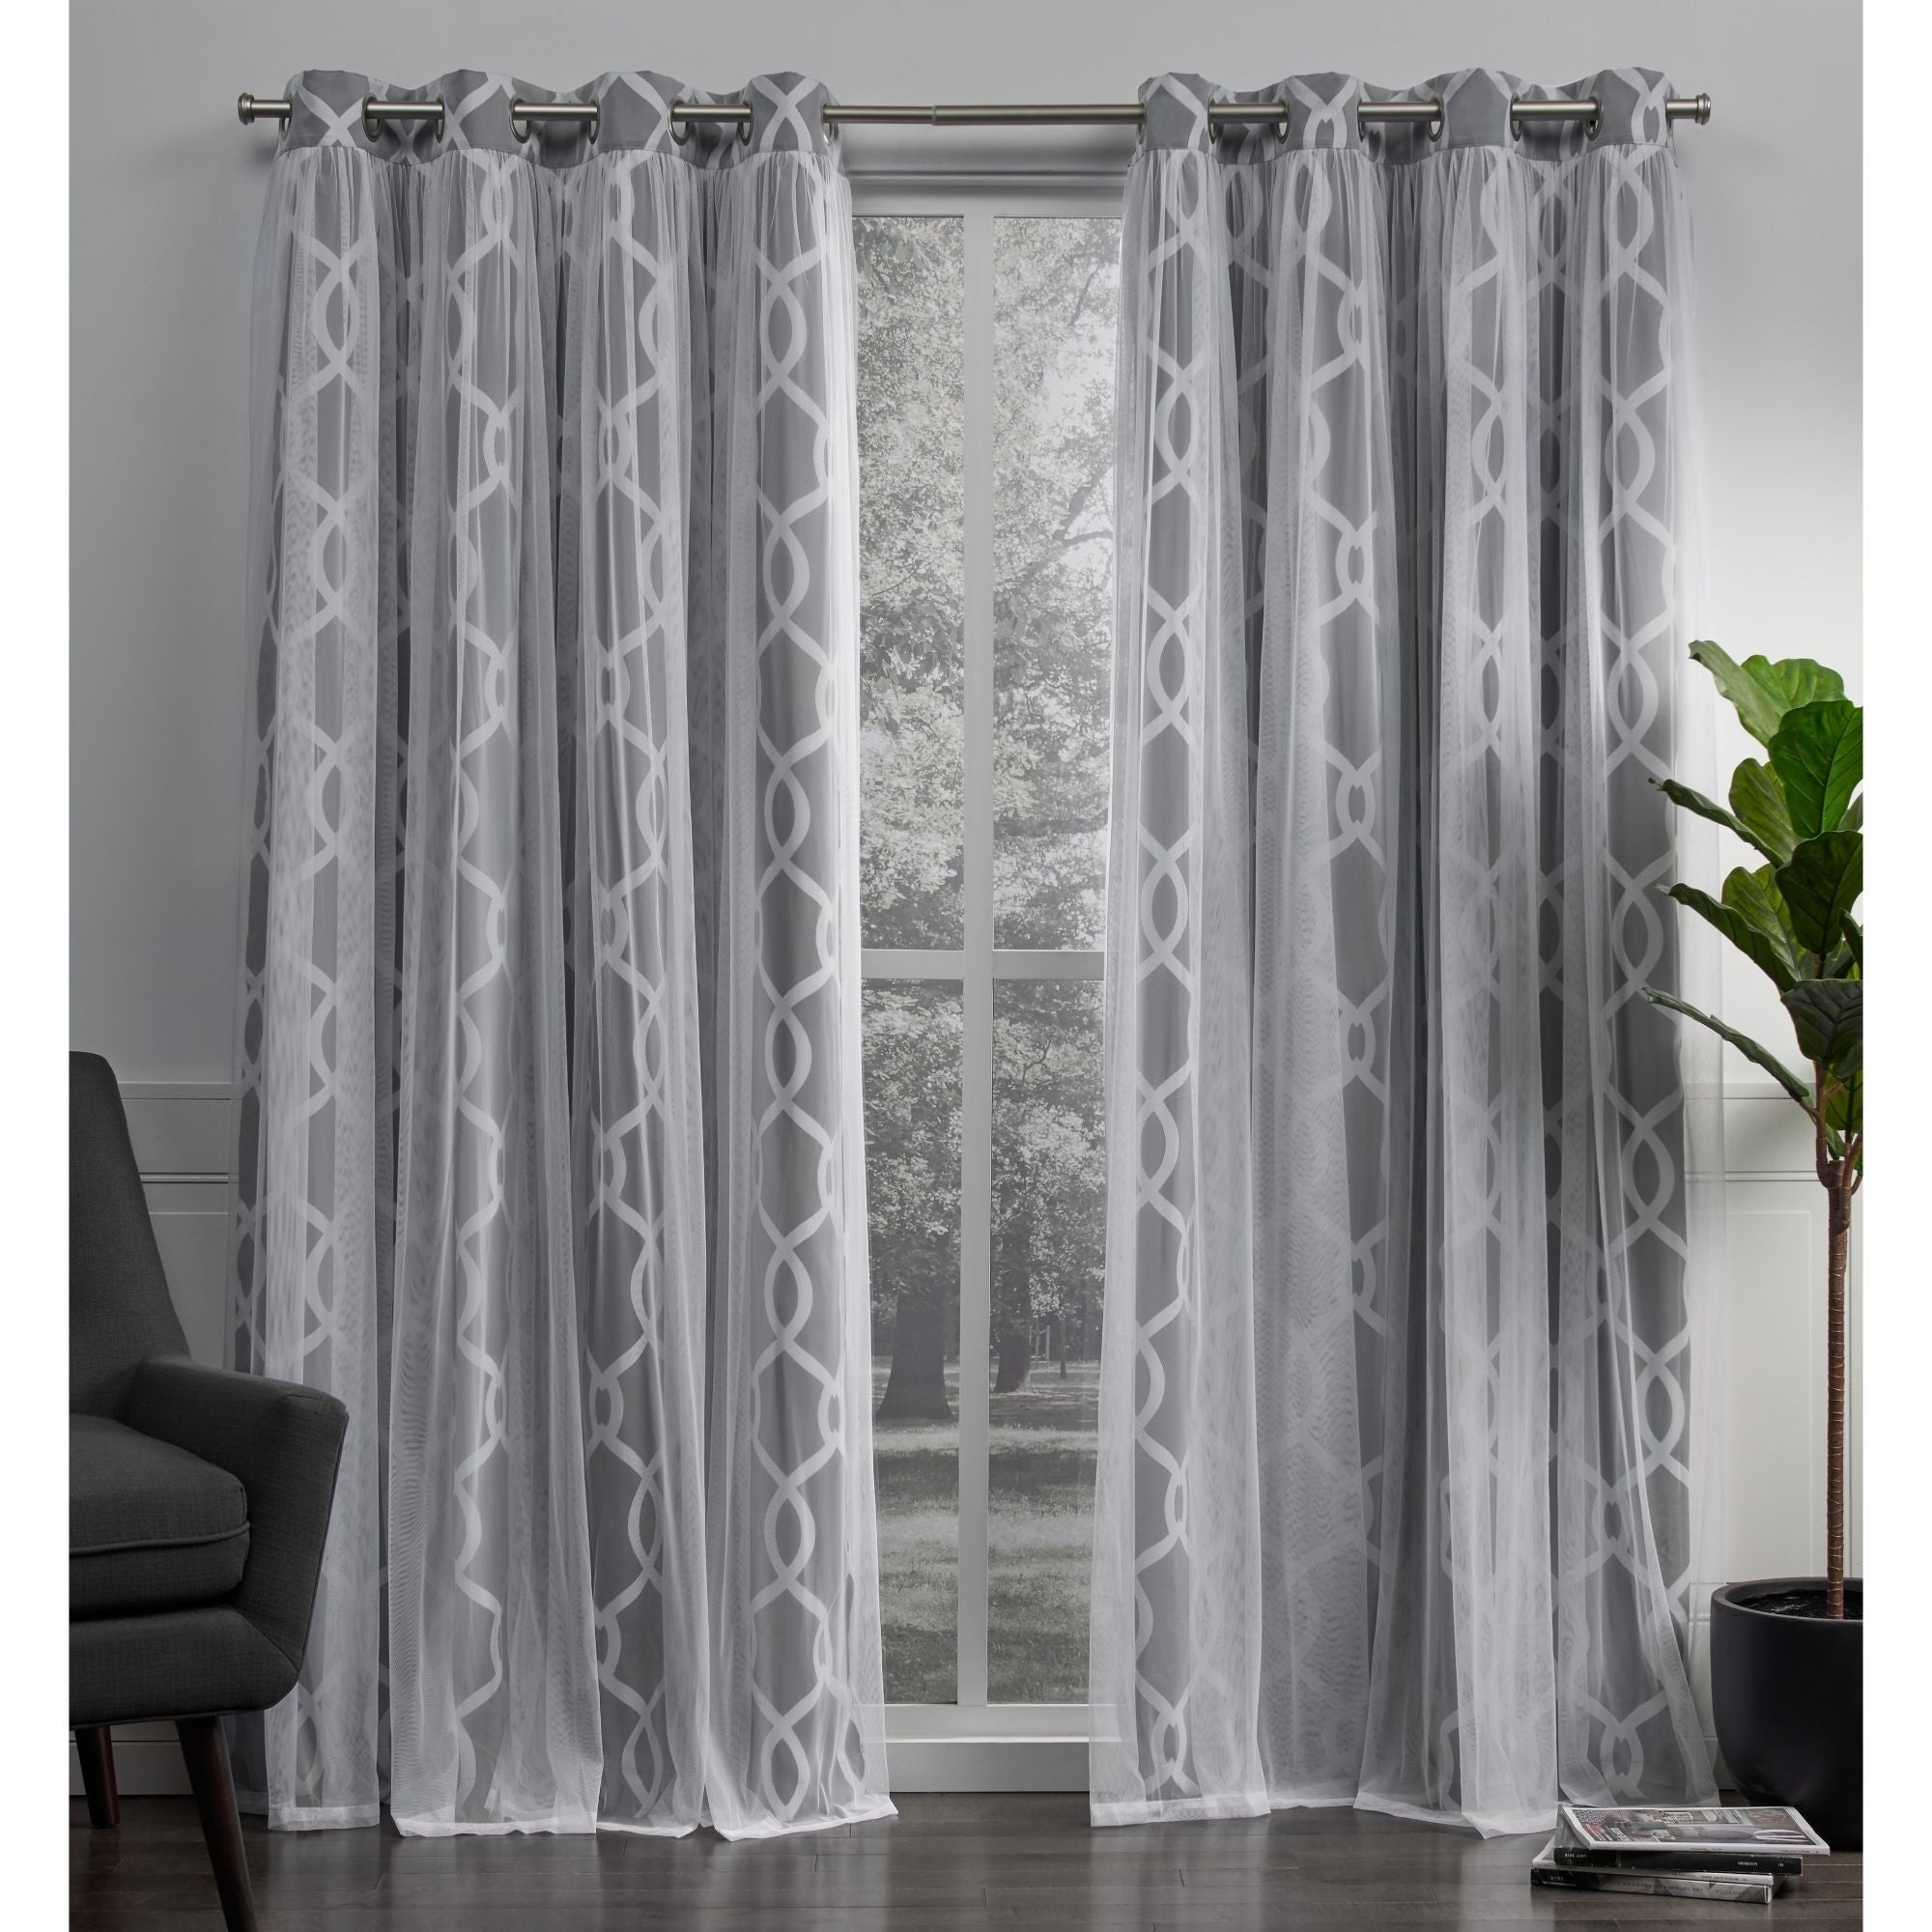 Most Recent Thermal Woven Blackout Grommet Top Curtain Panel Pairs In Ati Home Carmela Thermal Woven Blackout Grommet Top Curtain Panel Pair (View 8 of 20)